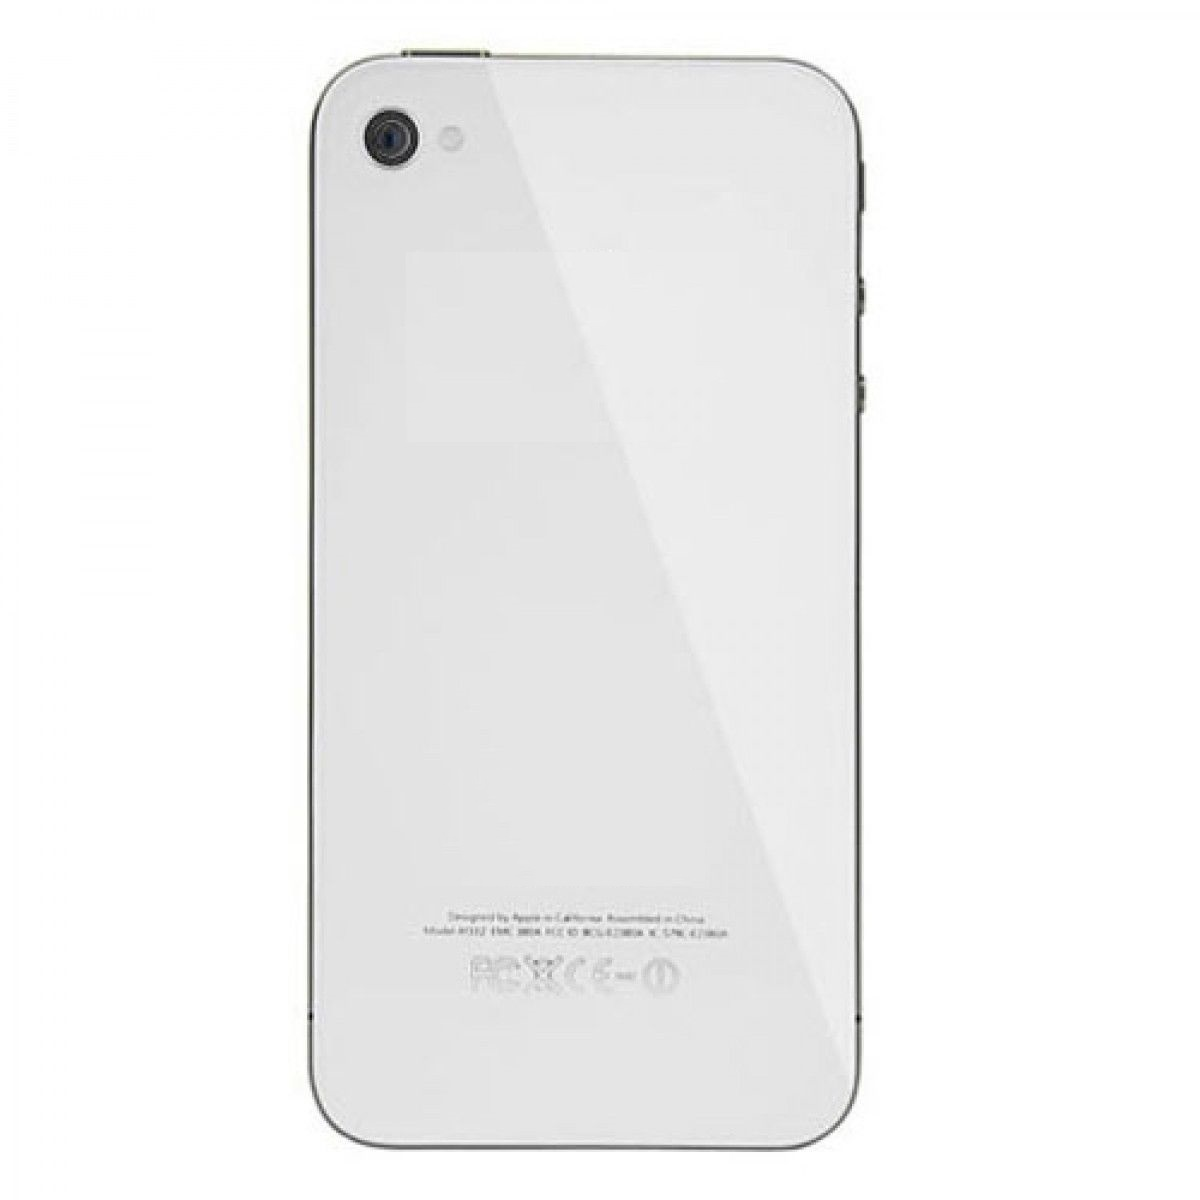 For Apple iPhone 4 4G AT&T GSM OEM Black/White Color Back Battery Door Cover With Frame(Hong Kong)